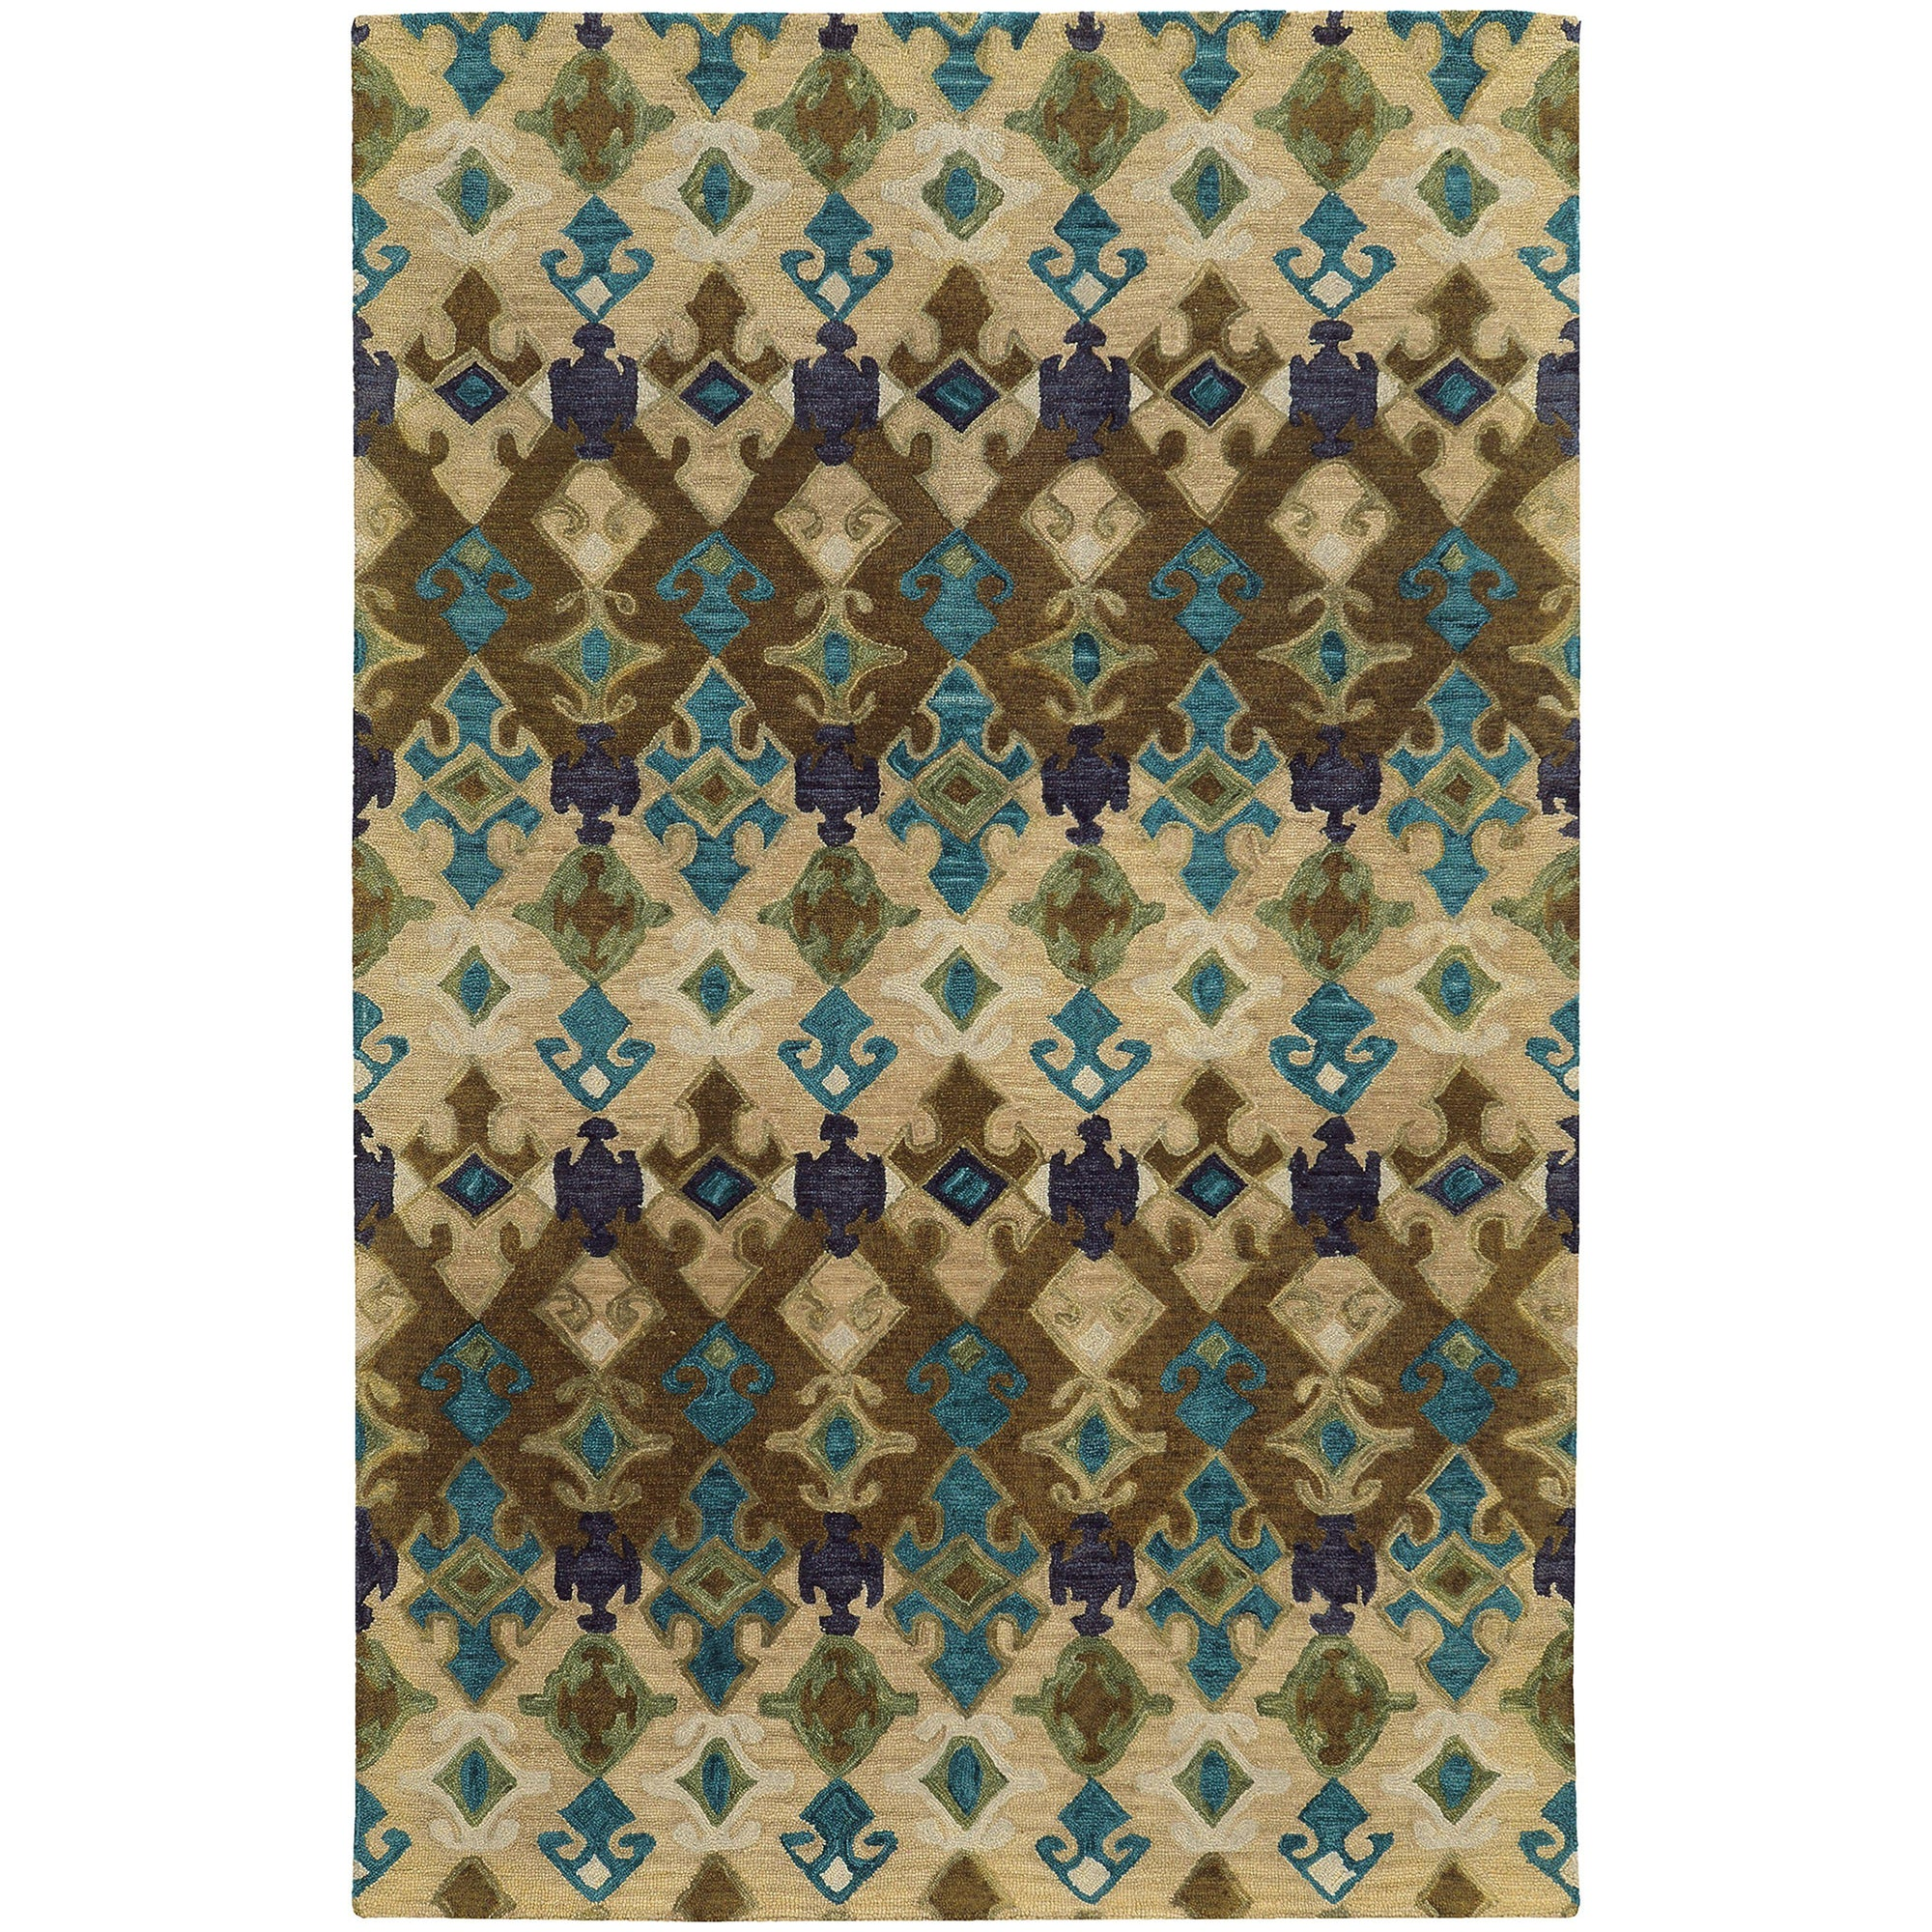 "Tommy Bahama Home Jamison 53308 Beige/Blue-Area Rug-Tommy Bahama Home-3' 6"" X 5' 6""-The Rug Truck"